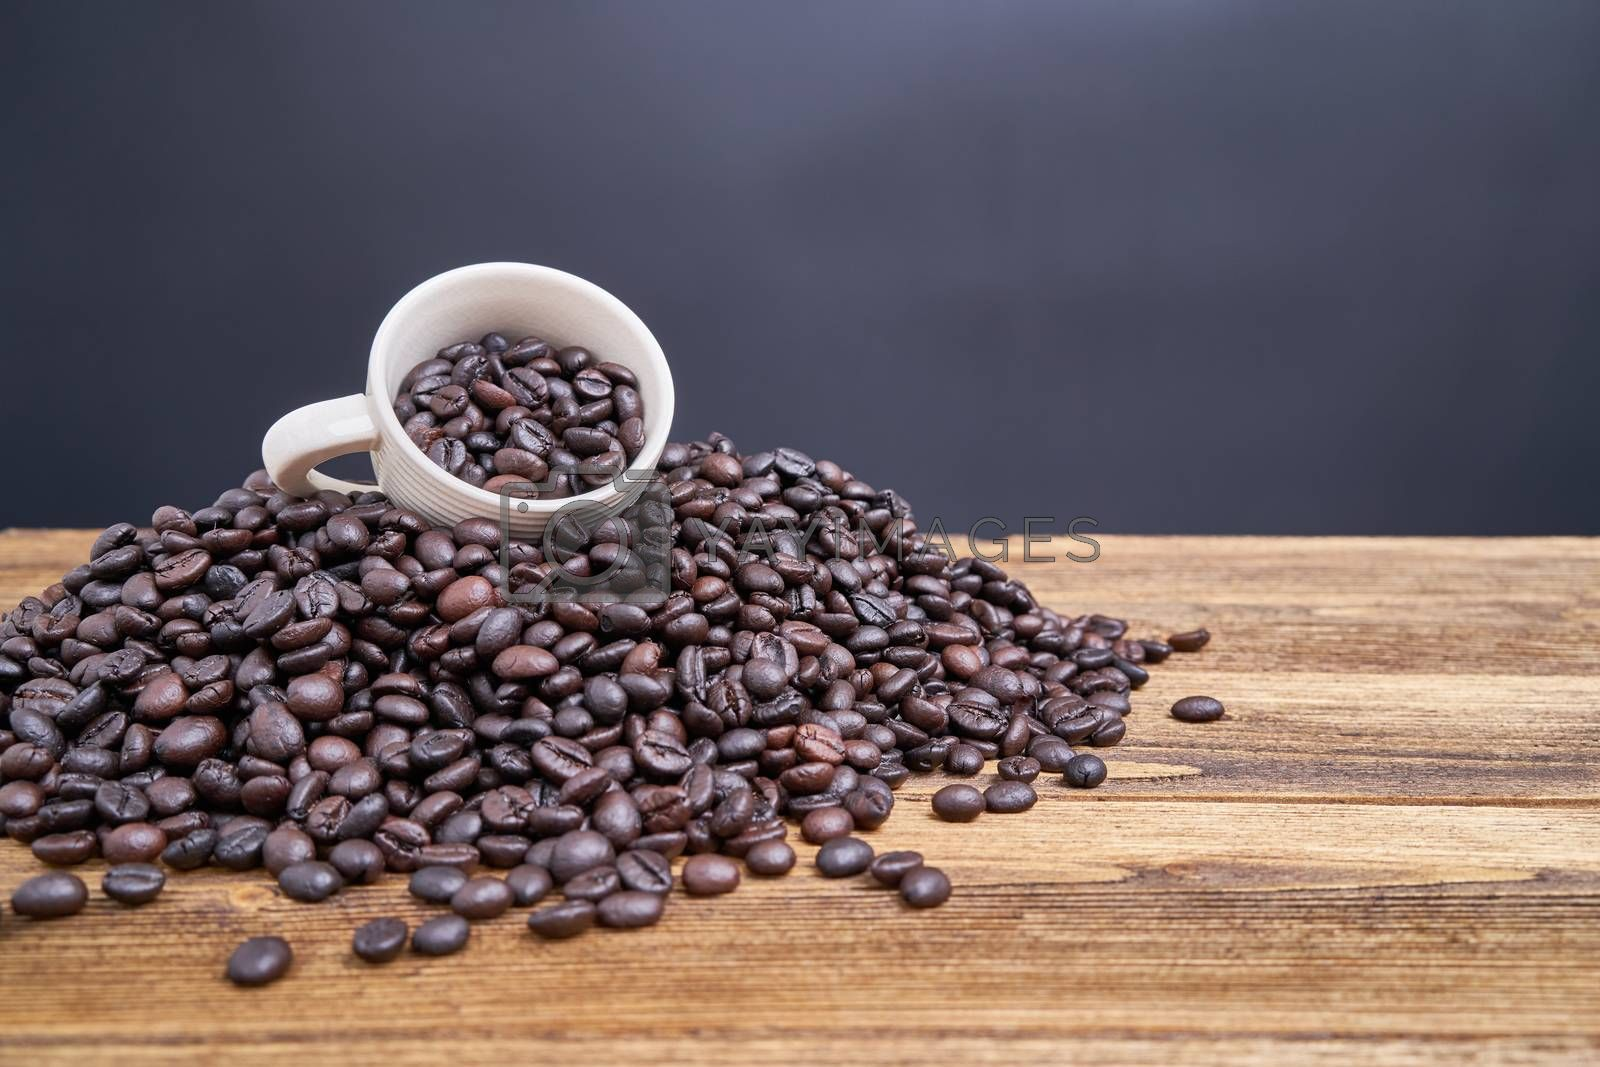 Royalty free image of Coffee bean in white cup place on pile coffee bean by eaglesky